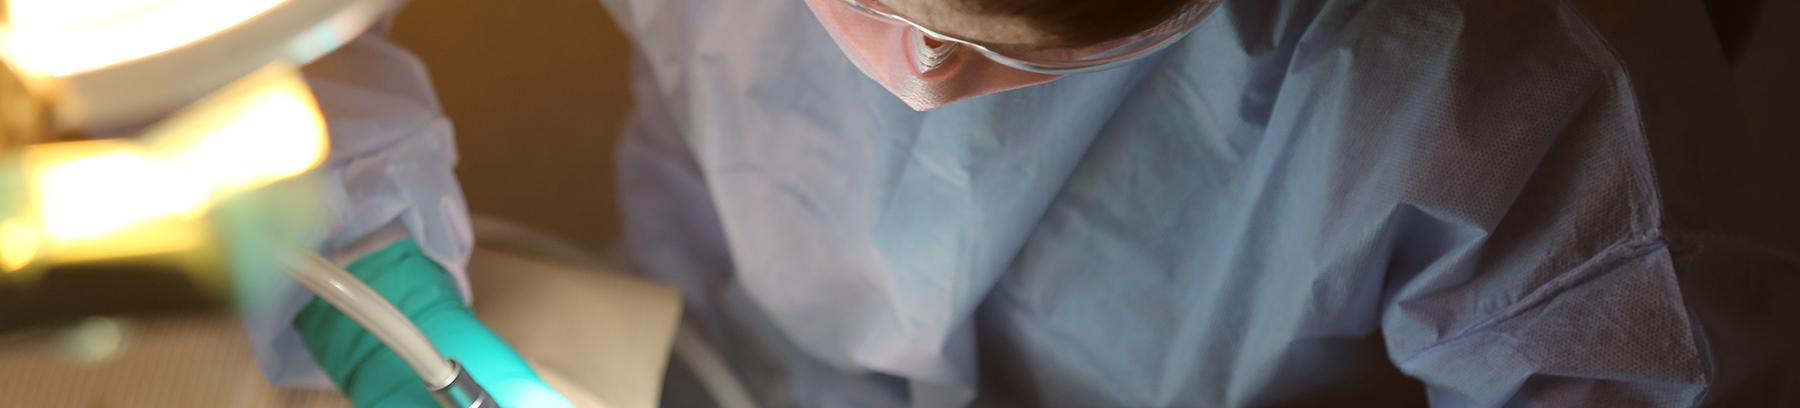 Close up of a student wearing googles and a mask holding dental equipment.